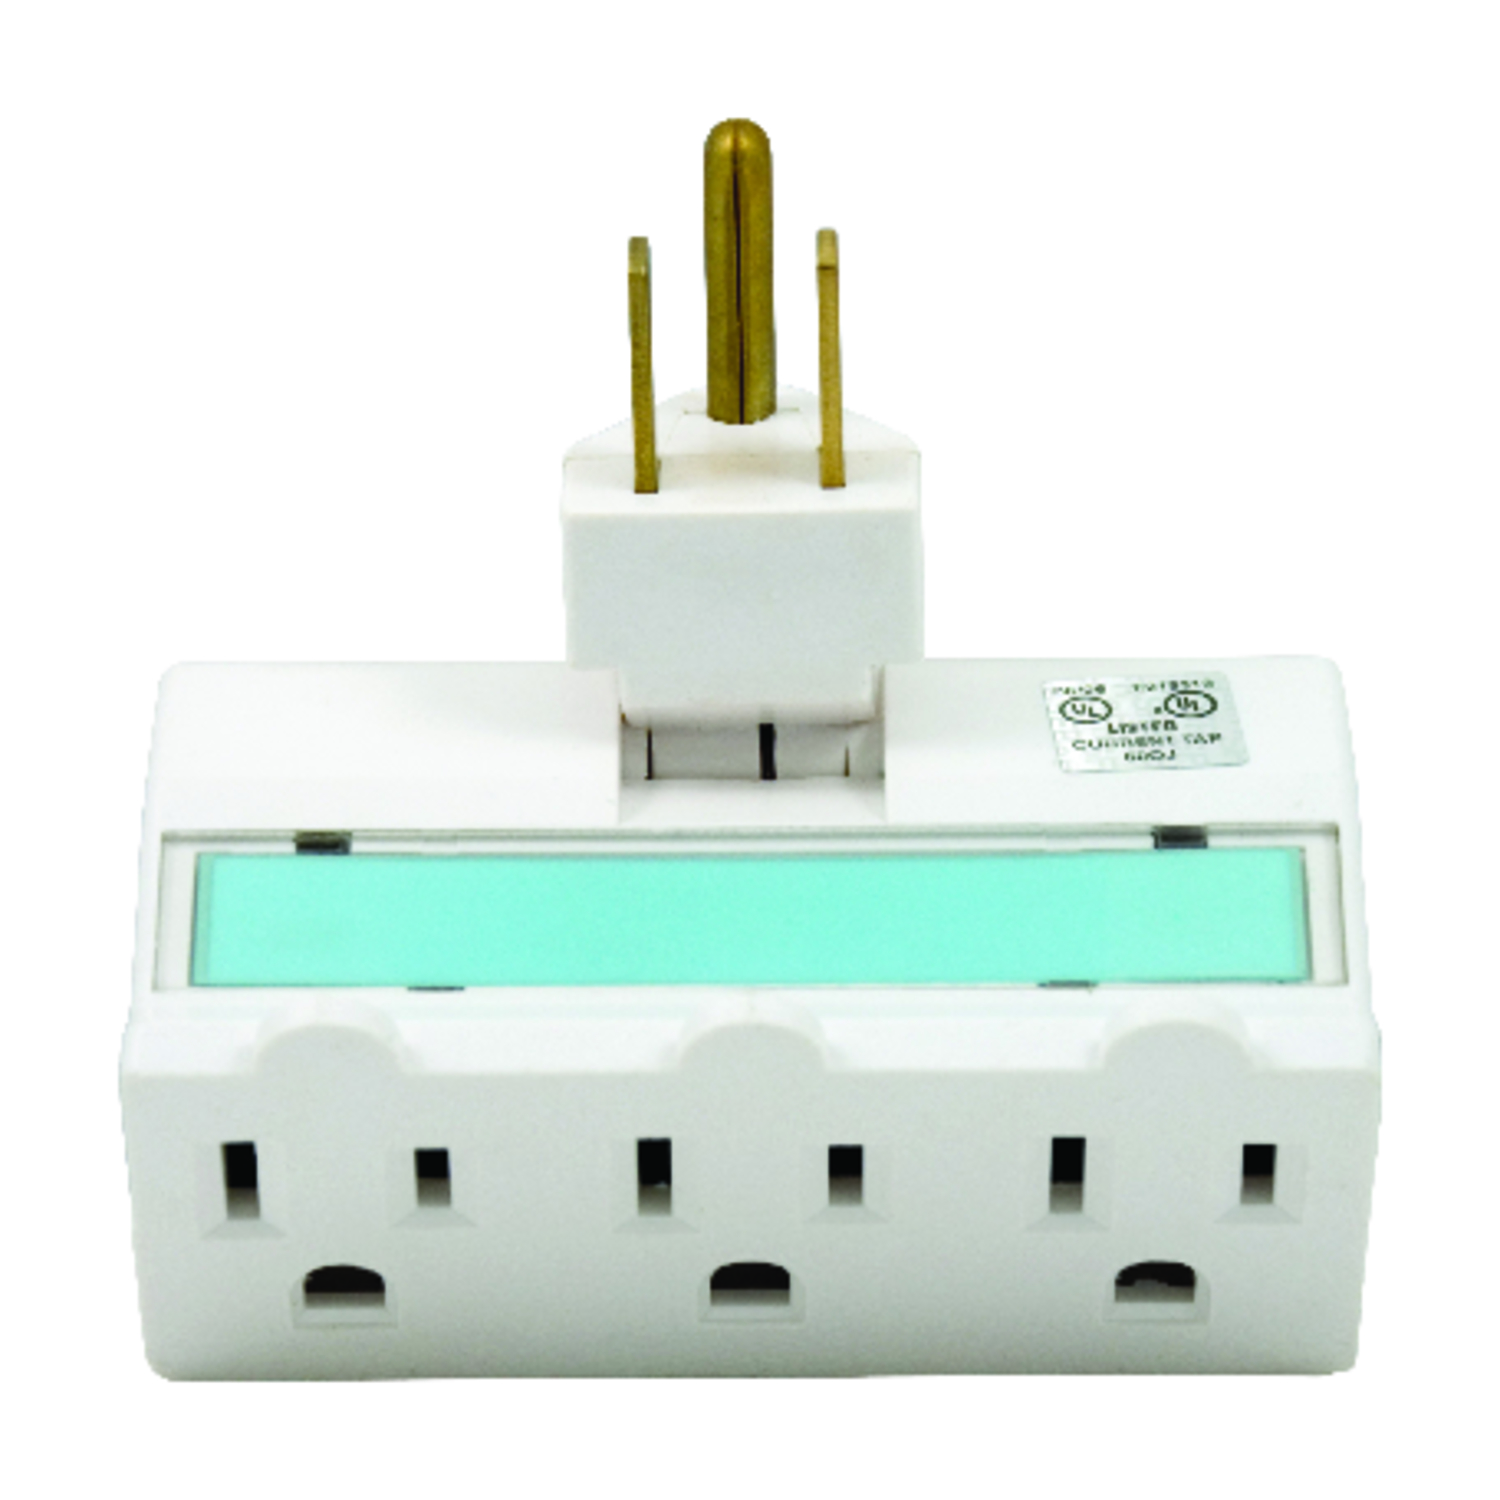 GE  Grounded  3 outlets Outlet Extender  1 pk Surge Protection